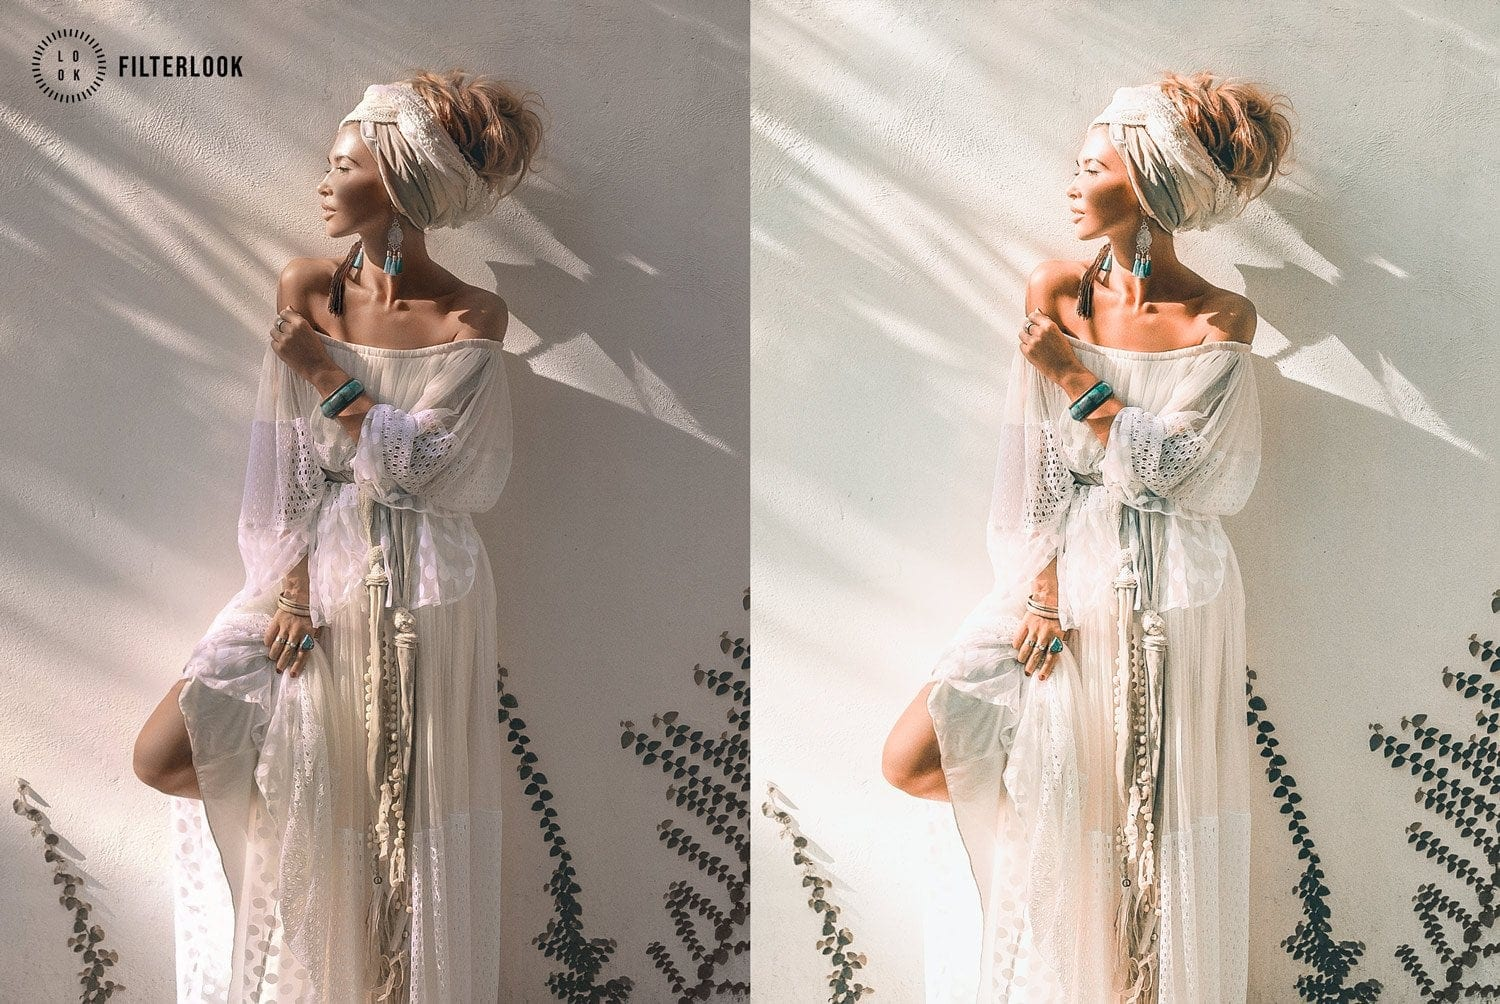 Free-Lightroom-Preset-Cool-Vibe-Before-and-After-Filterlook.com